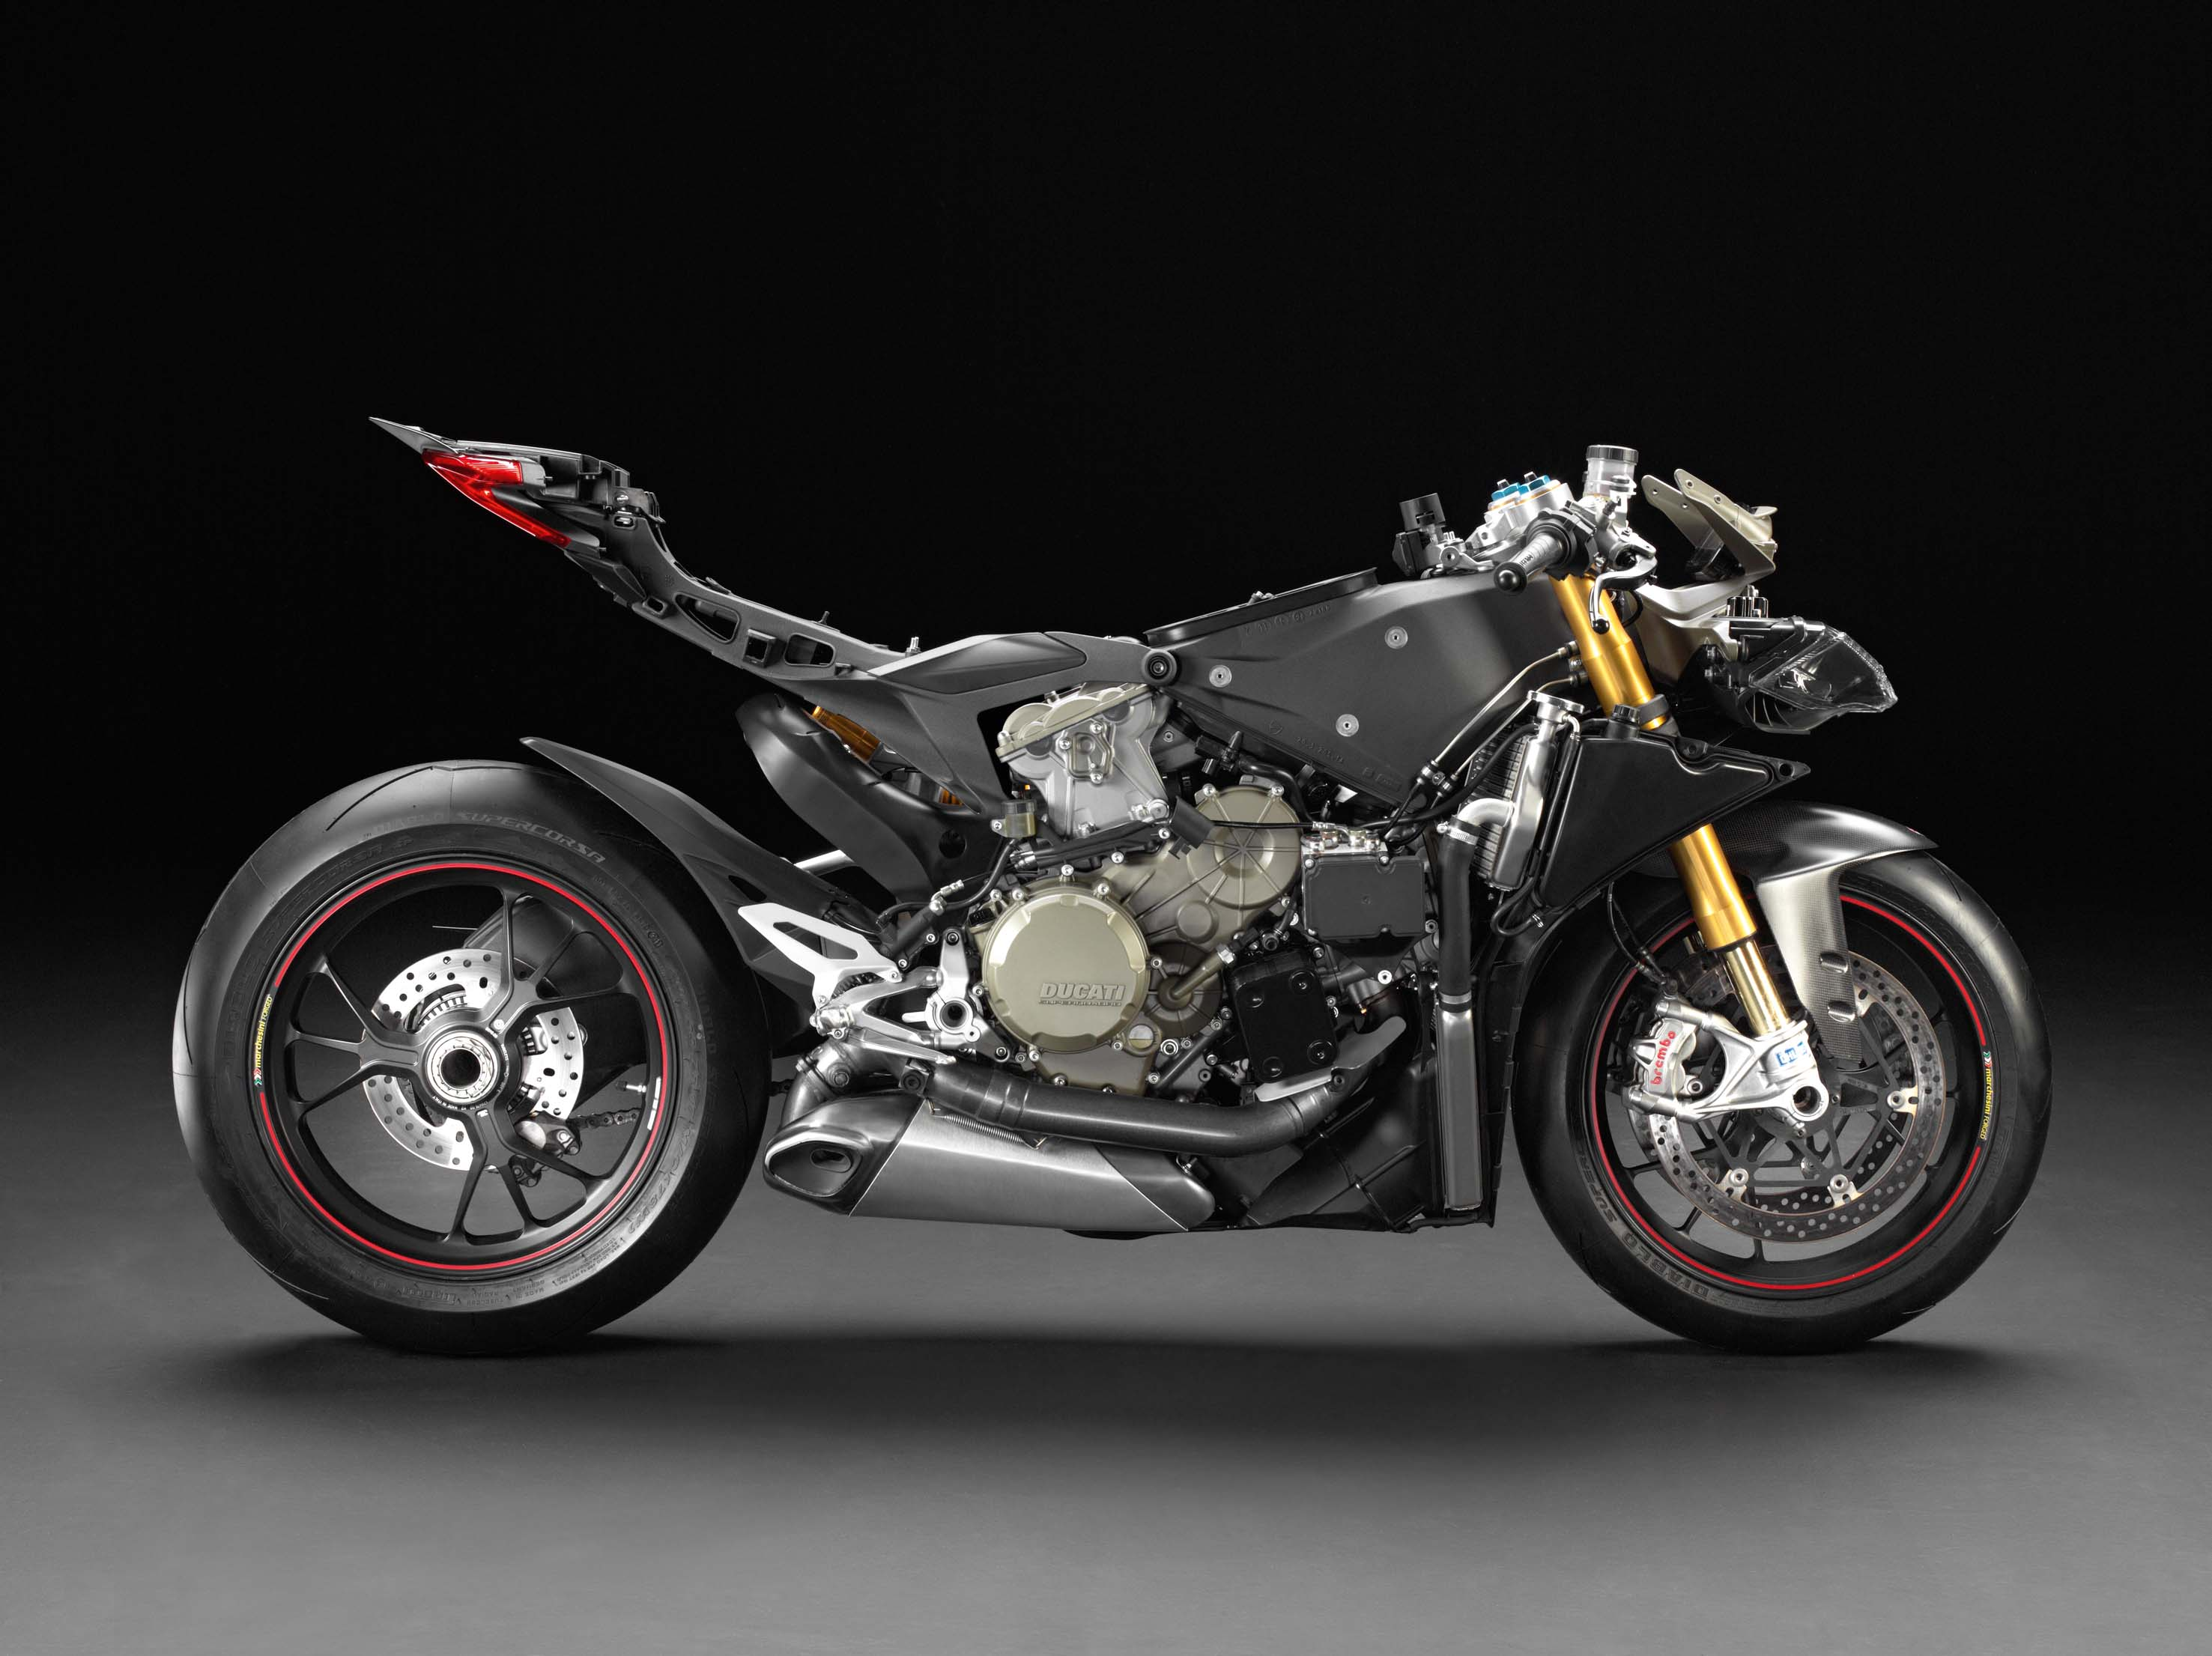 ducati 1199 Panigale ( Topic N°2 ) - Page 3 Ducati-1199-Panigale-no-fairings-01